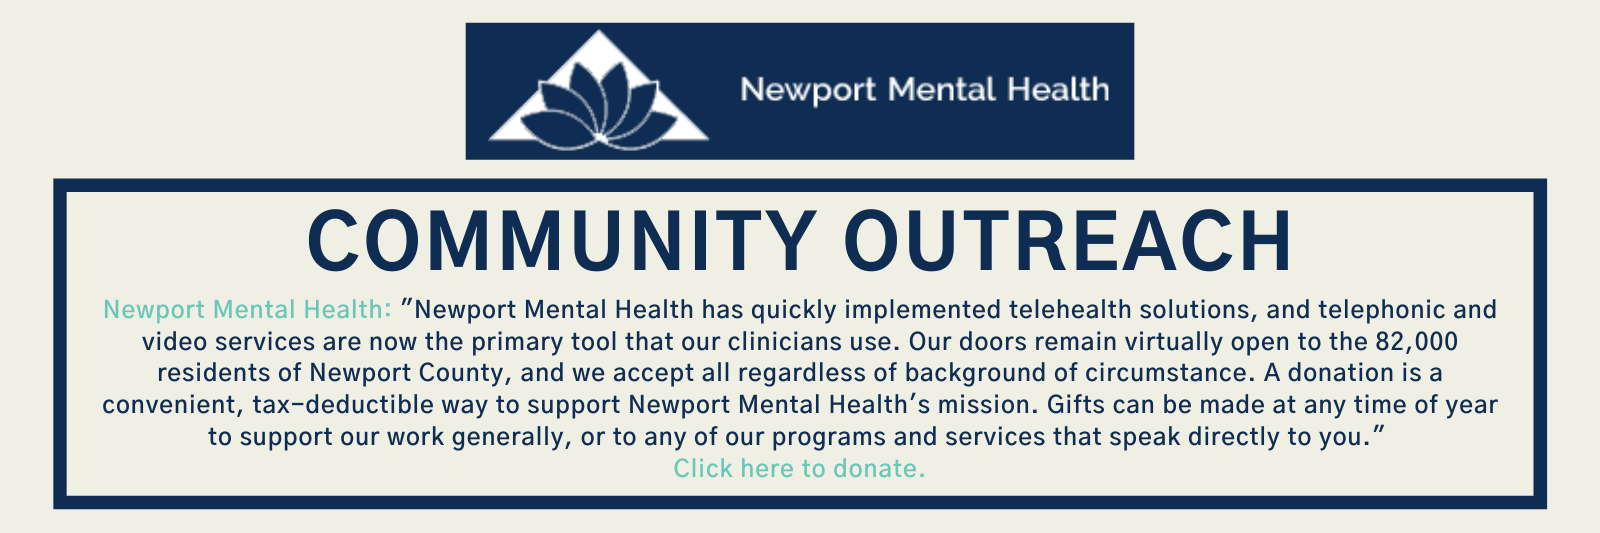 Community-Outreach---Newport-Mental-Health-Web.png